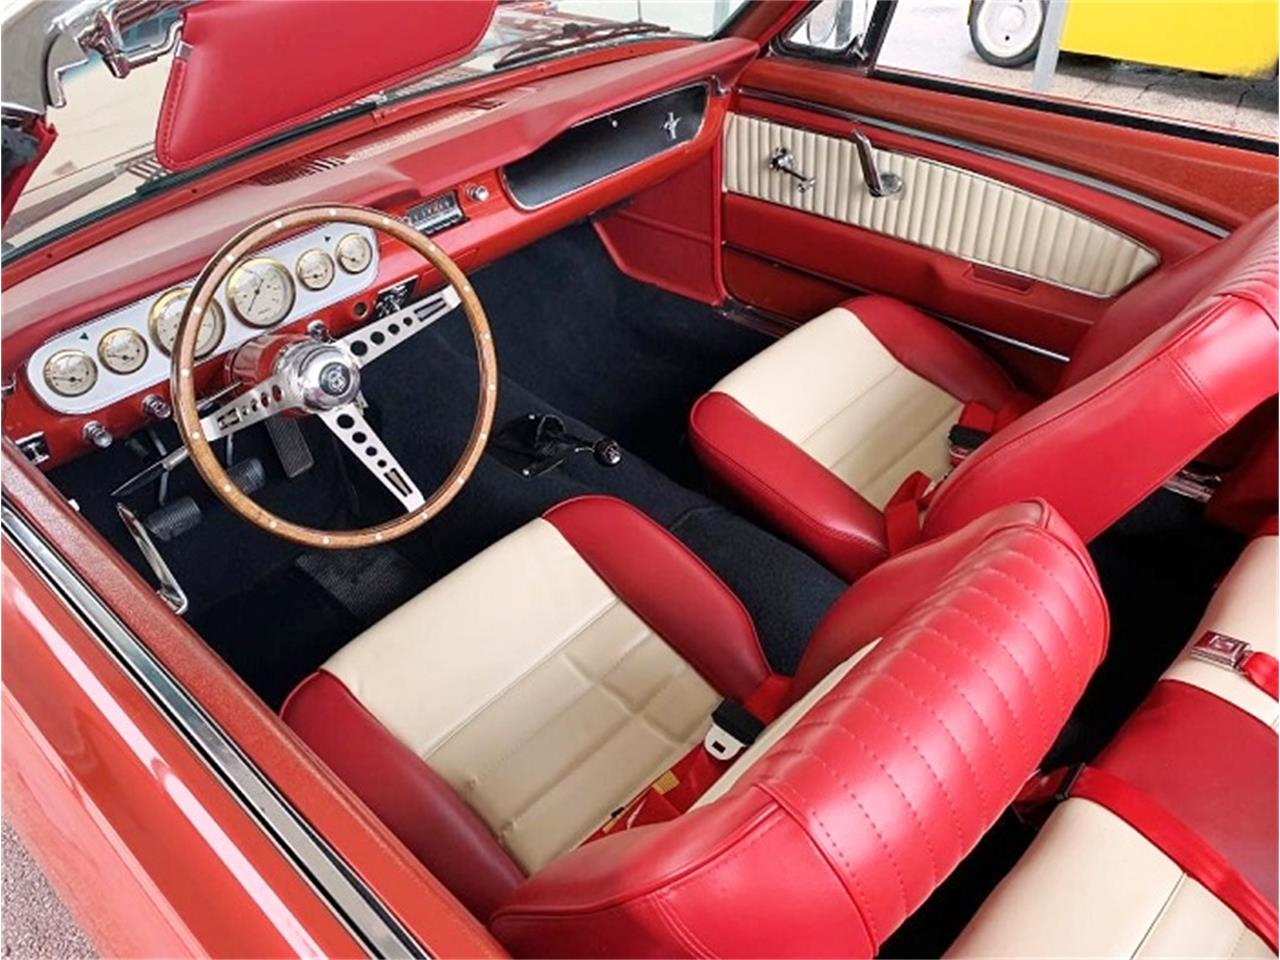 1965 Ford Mustang (CC-1248195) for sale in pompano beach32500, Florida